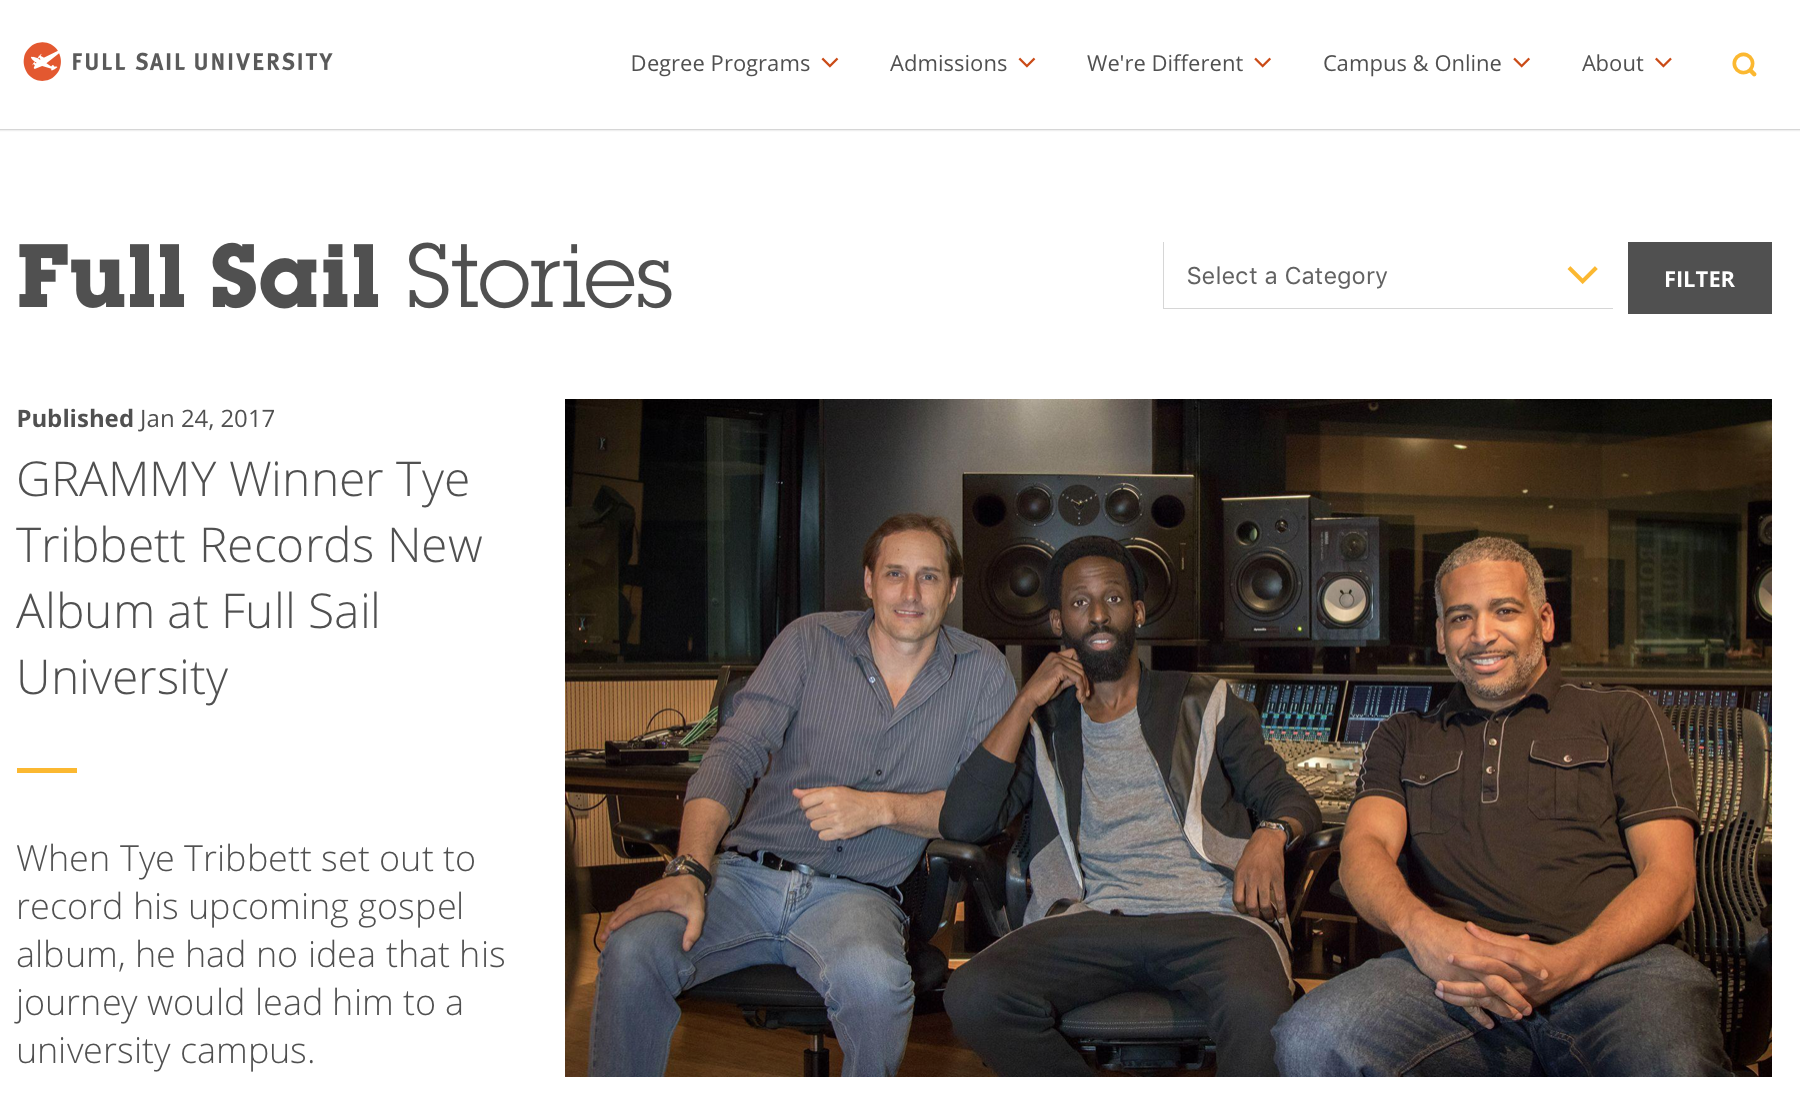 Industry collaborations: tye Tribbett